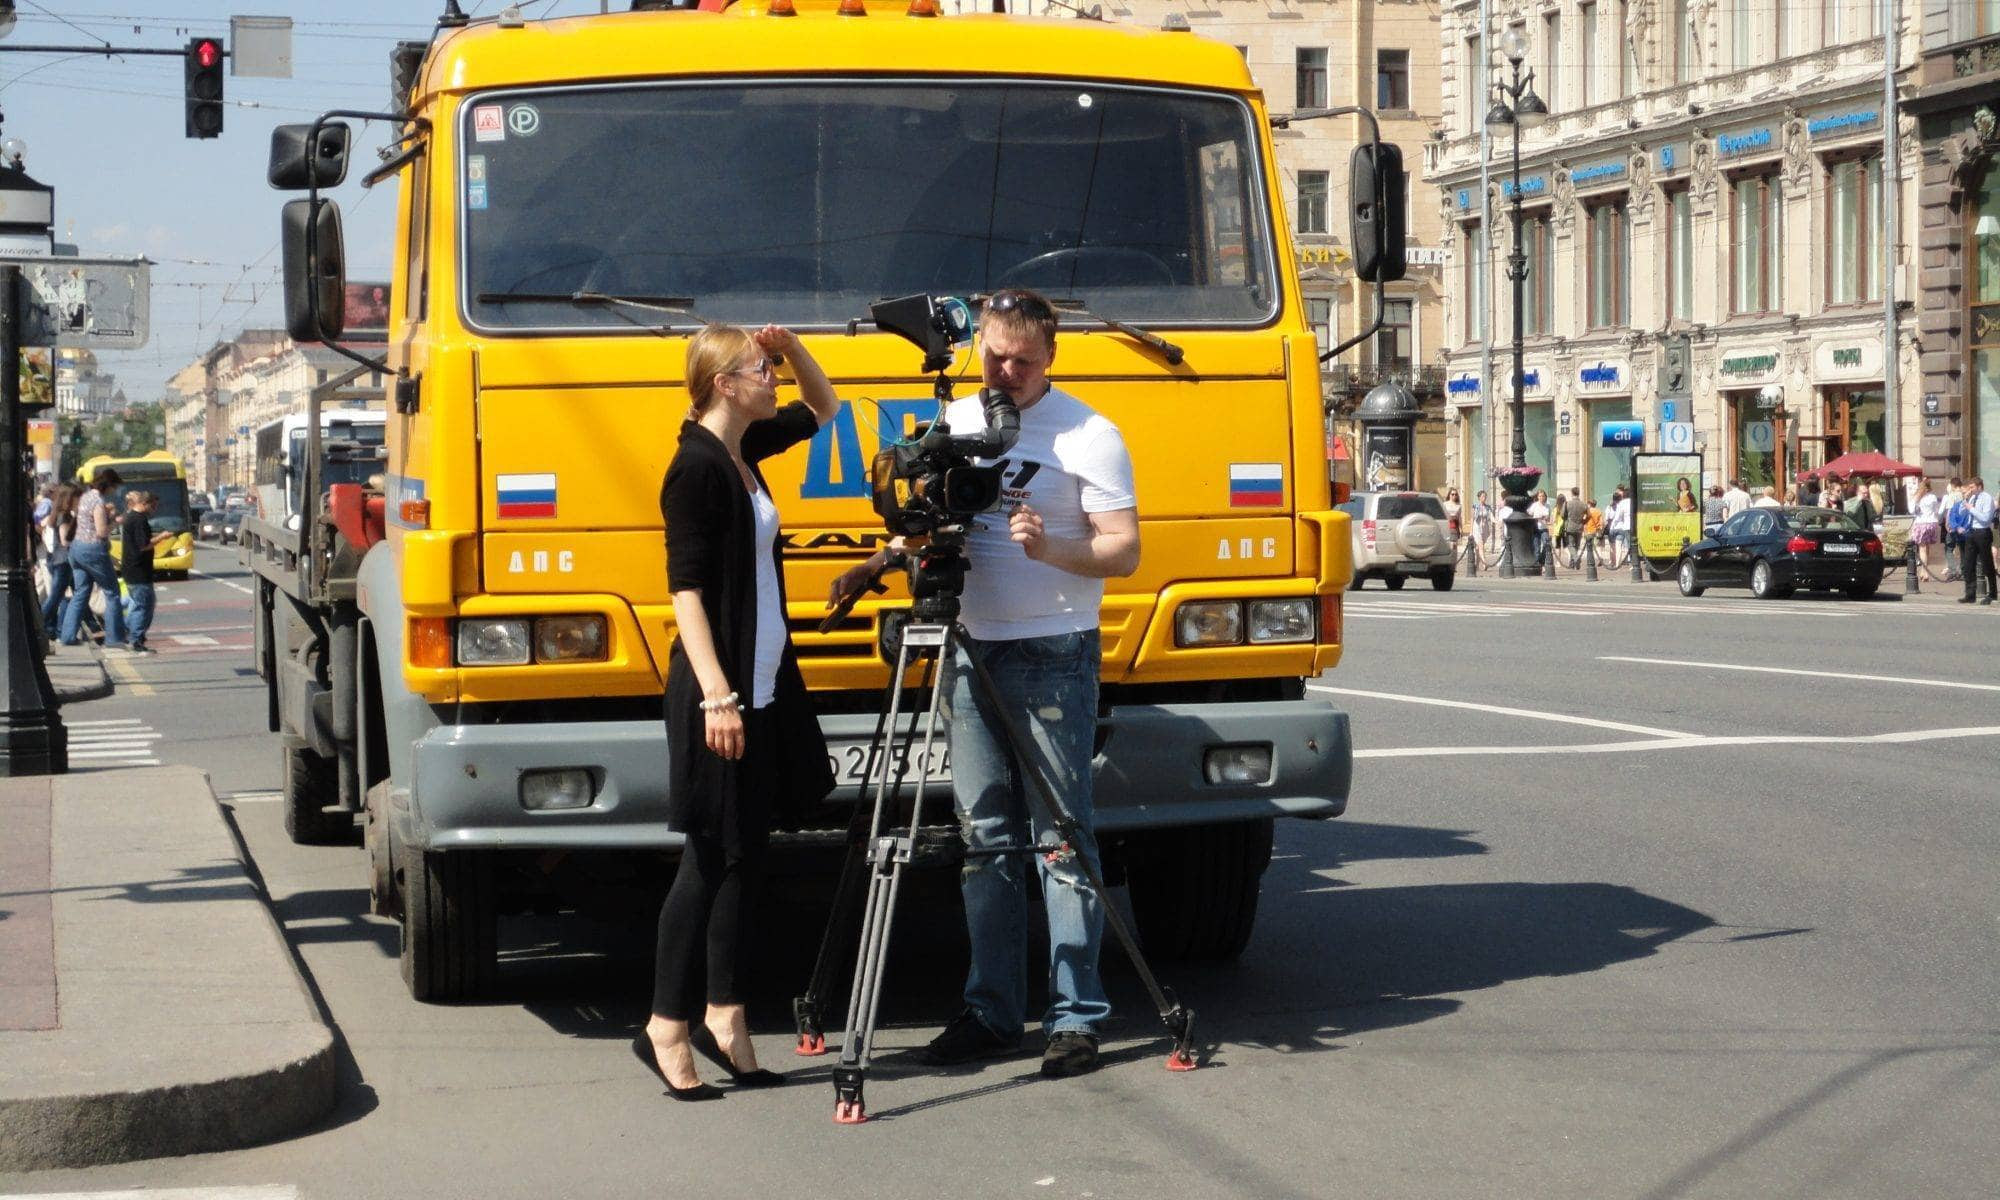 Filming in St. Petersburg, Russia